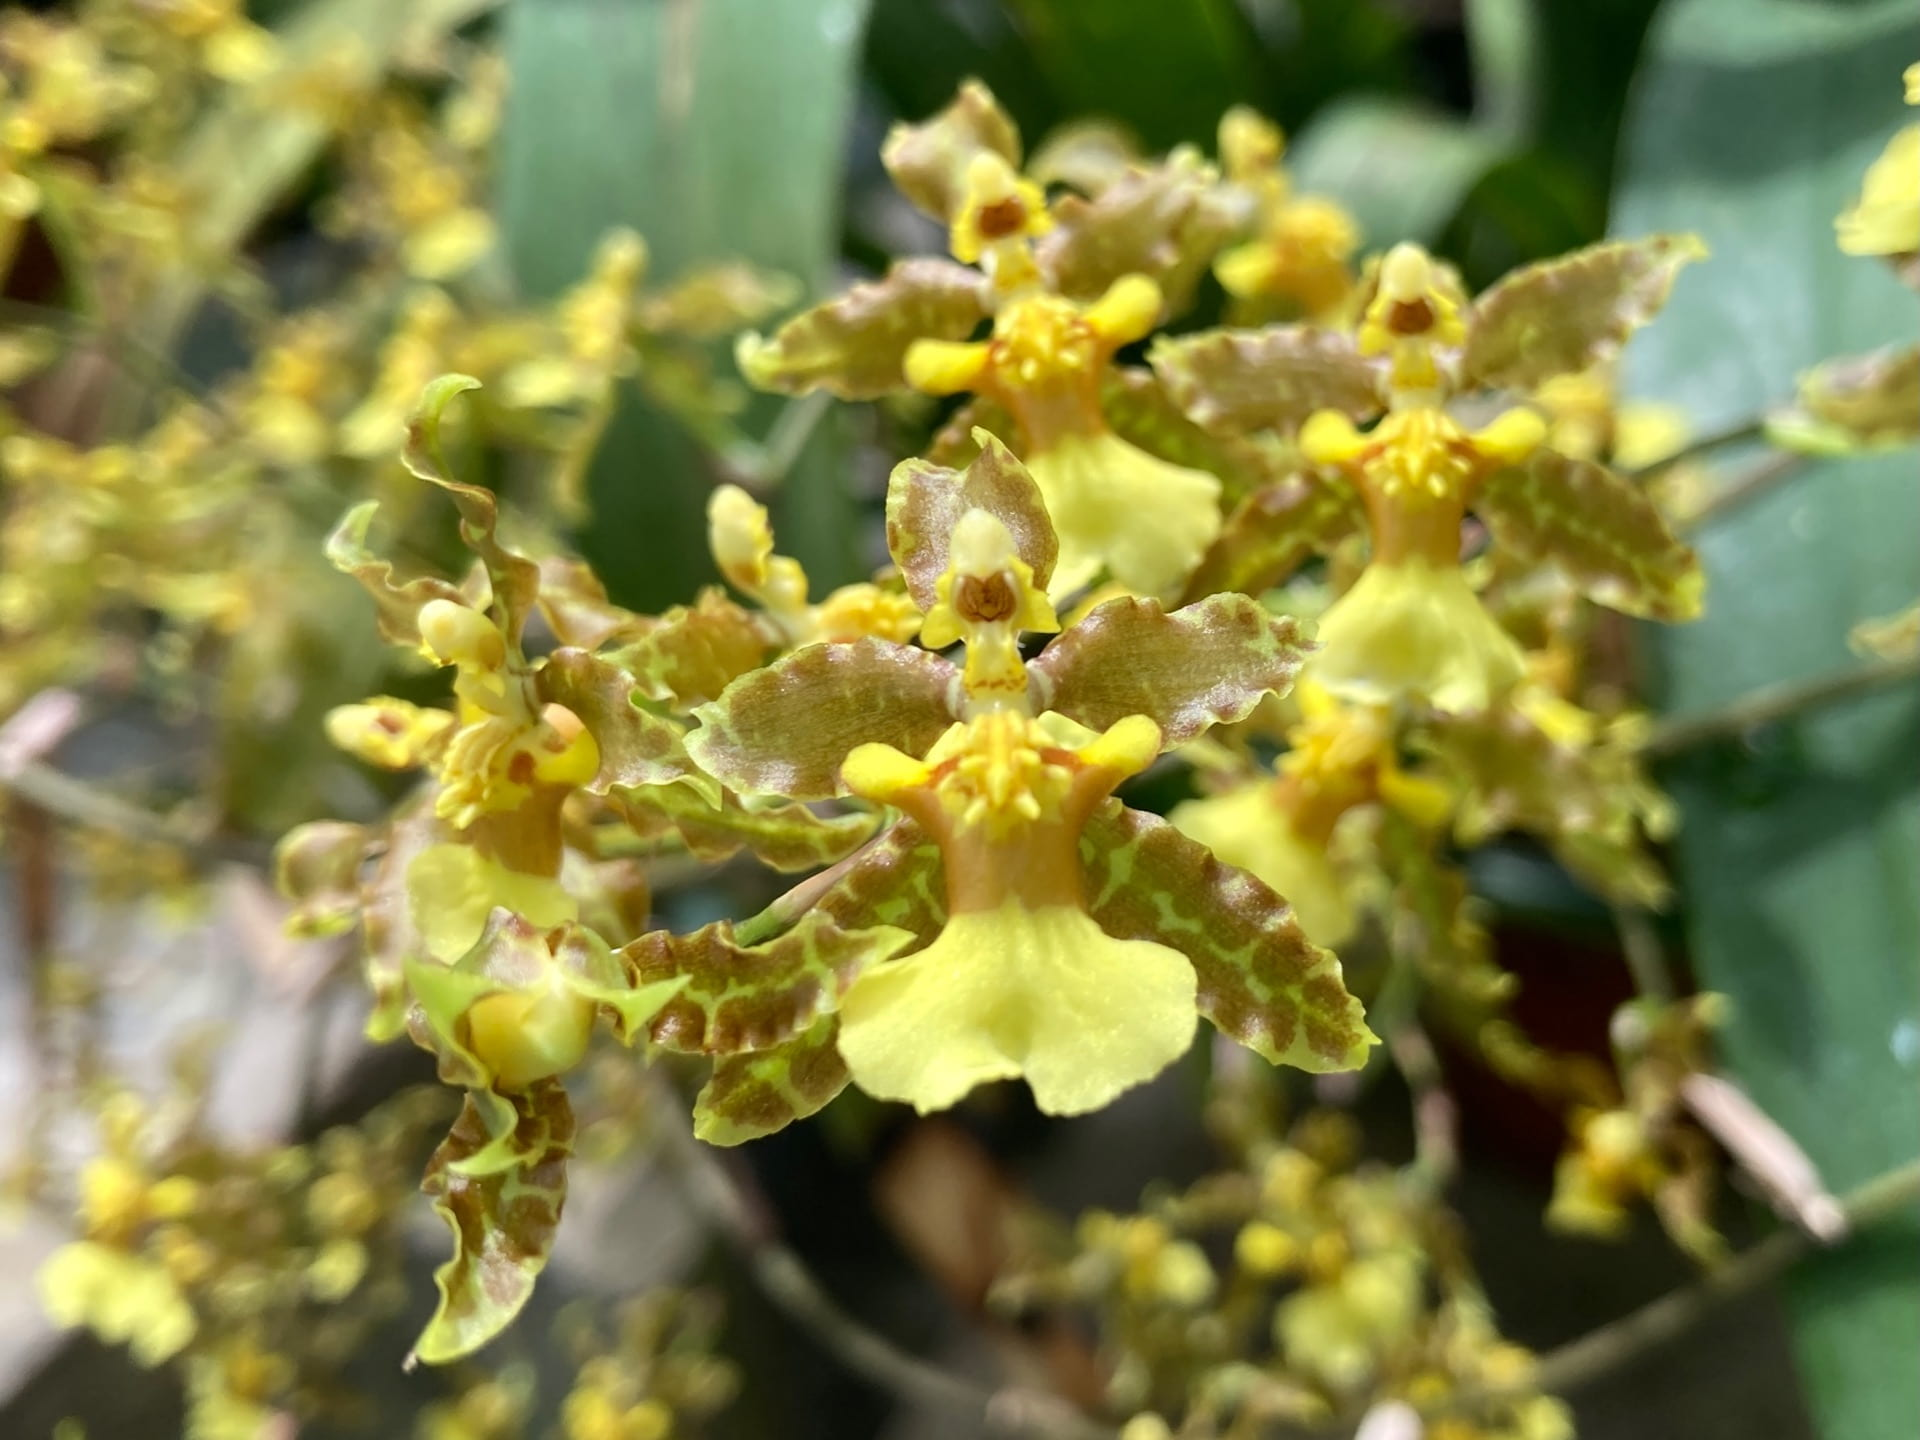 With an inflorescence of over five feet, the Oncidium orchid takes center stage in the Biology Greenhouse.